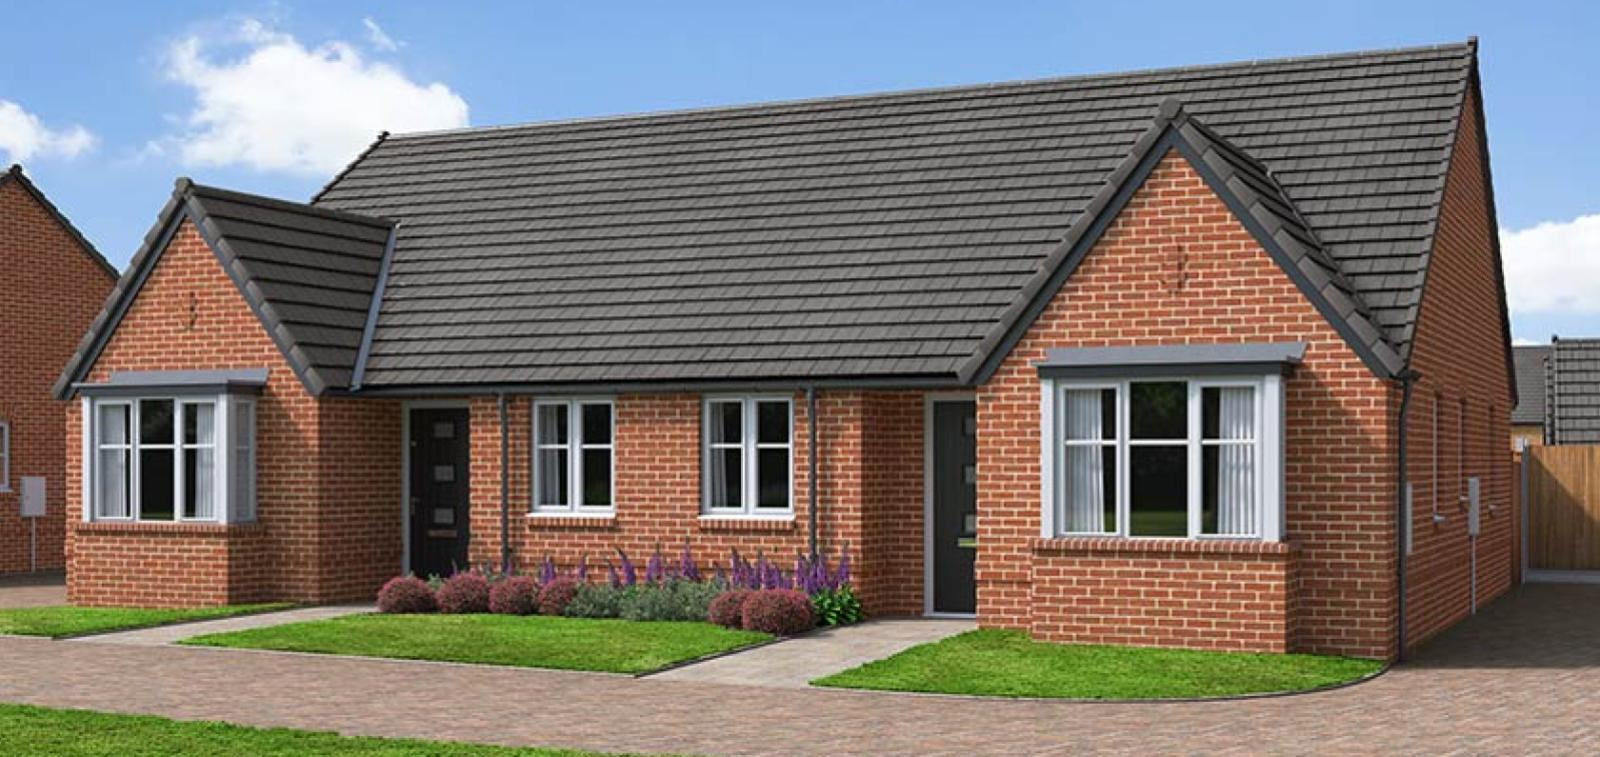 The Proposed Exterior (CGI) Of The Foxwhelp, A 2 Bed Semi-Detached Bungalow